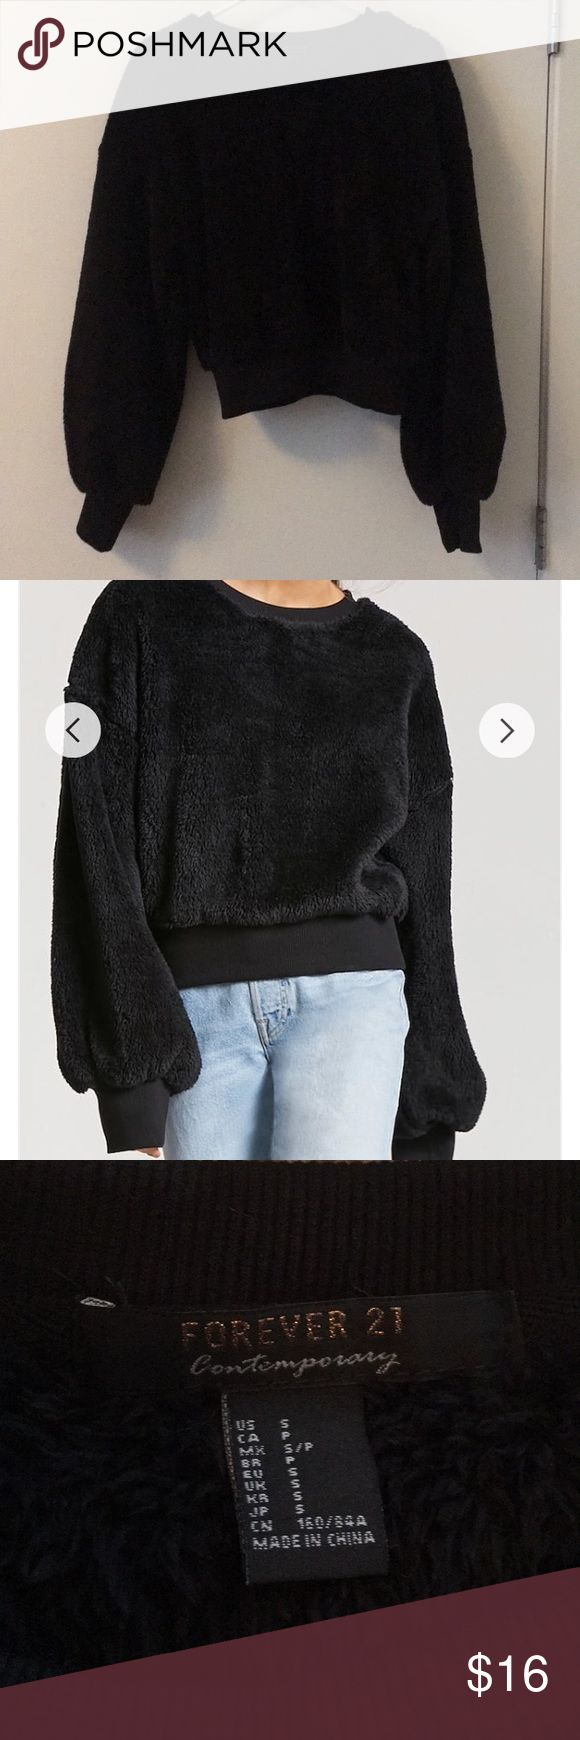 Fuzzy Cropped Sweater INCREDIBLY soft fuzzy sweater! Cropped at the waist and has bell sleeves that cuff. I had to upload the site photo just to show the detail of how soft this thing is! NWOT!  👽 All prices negotiable! 👽 ✨ Bundle and save! ✨ Forever 21 Sweaters